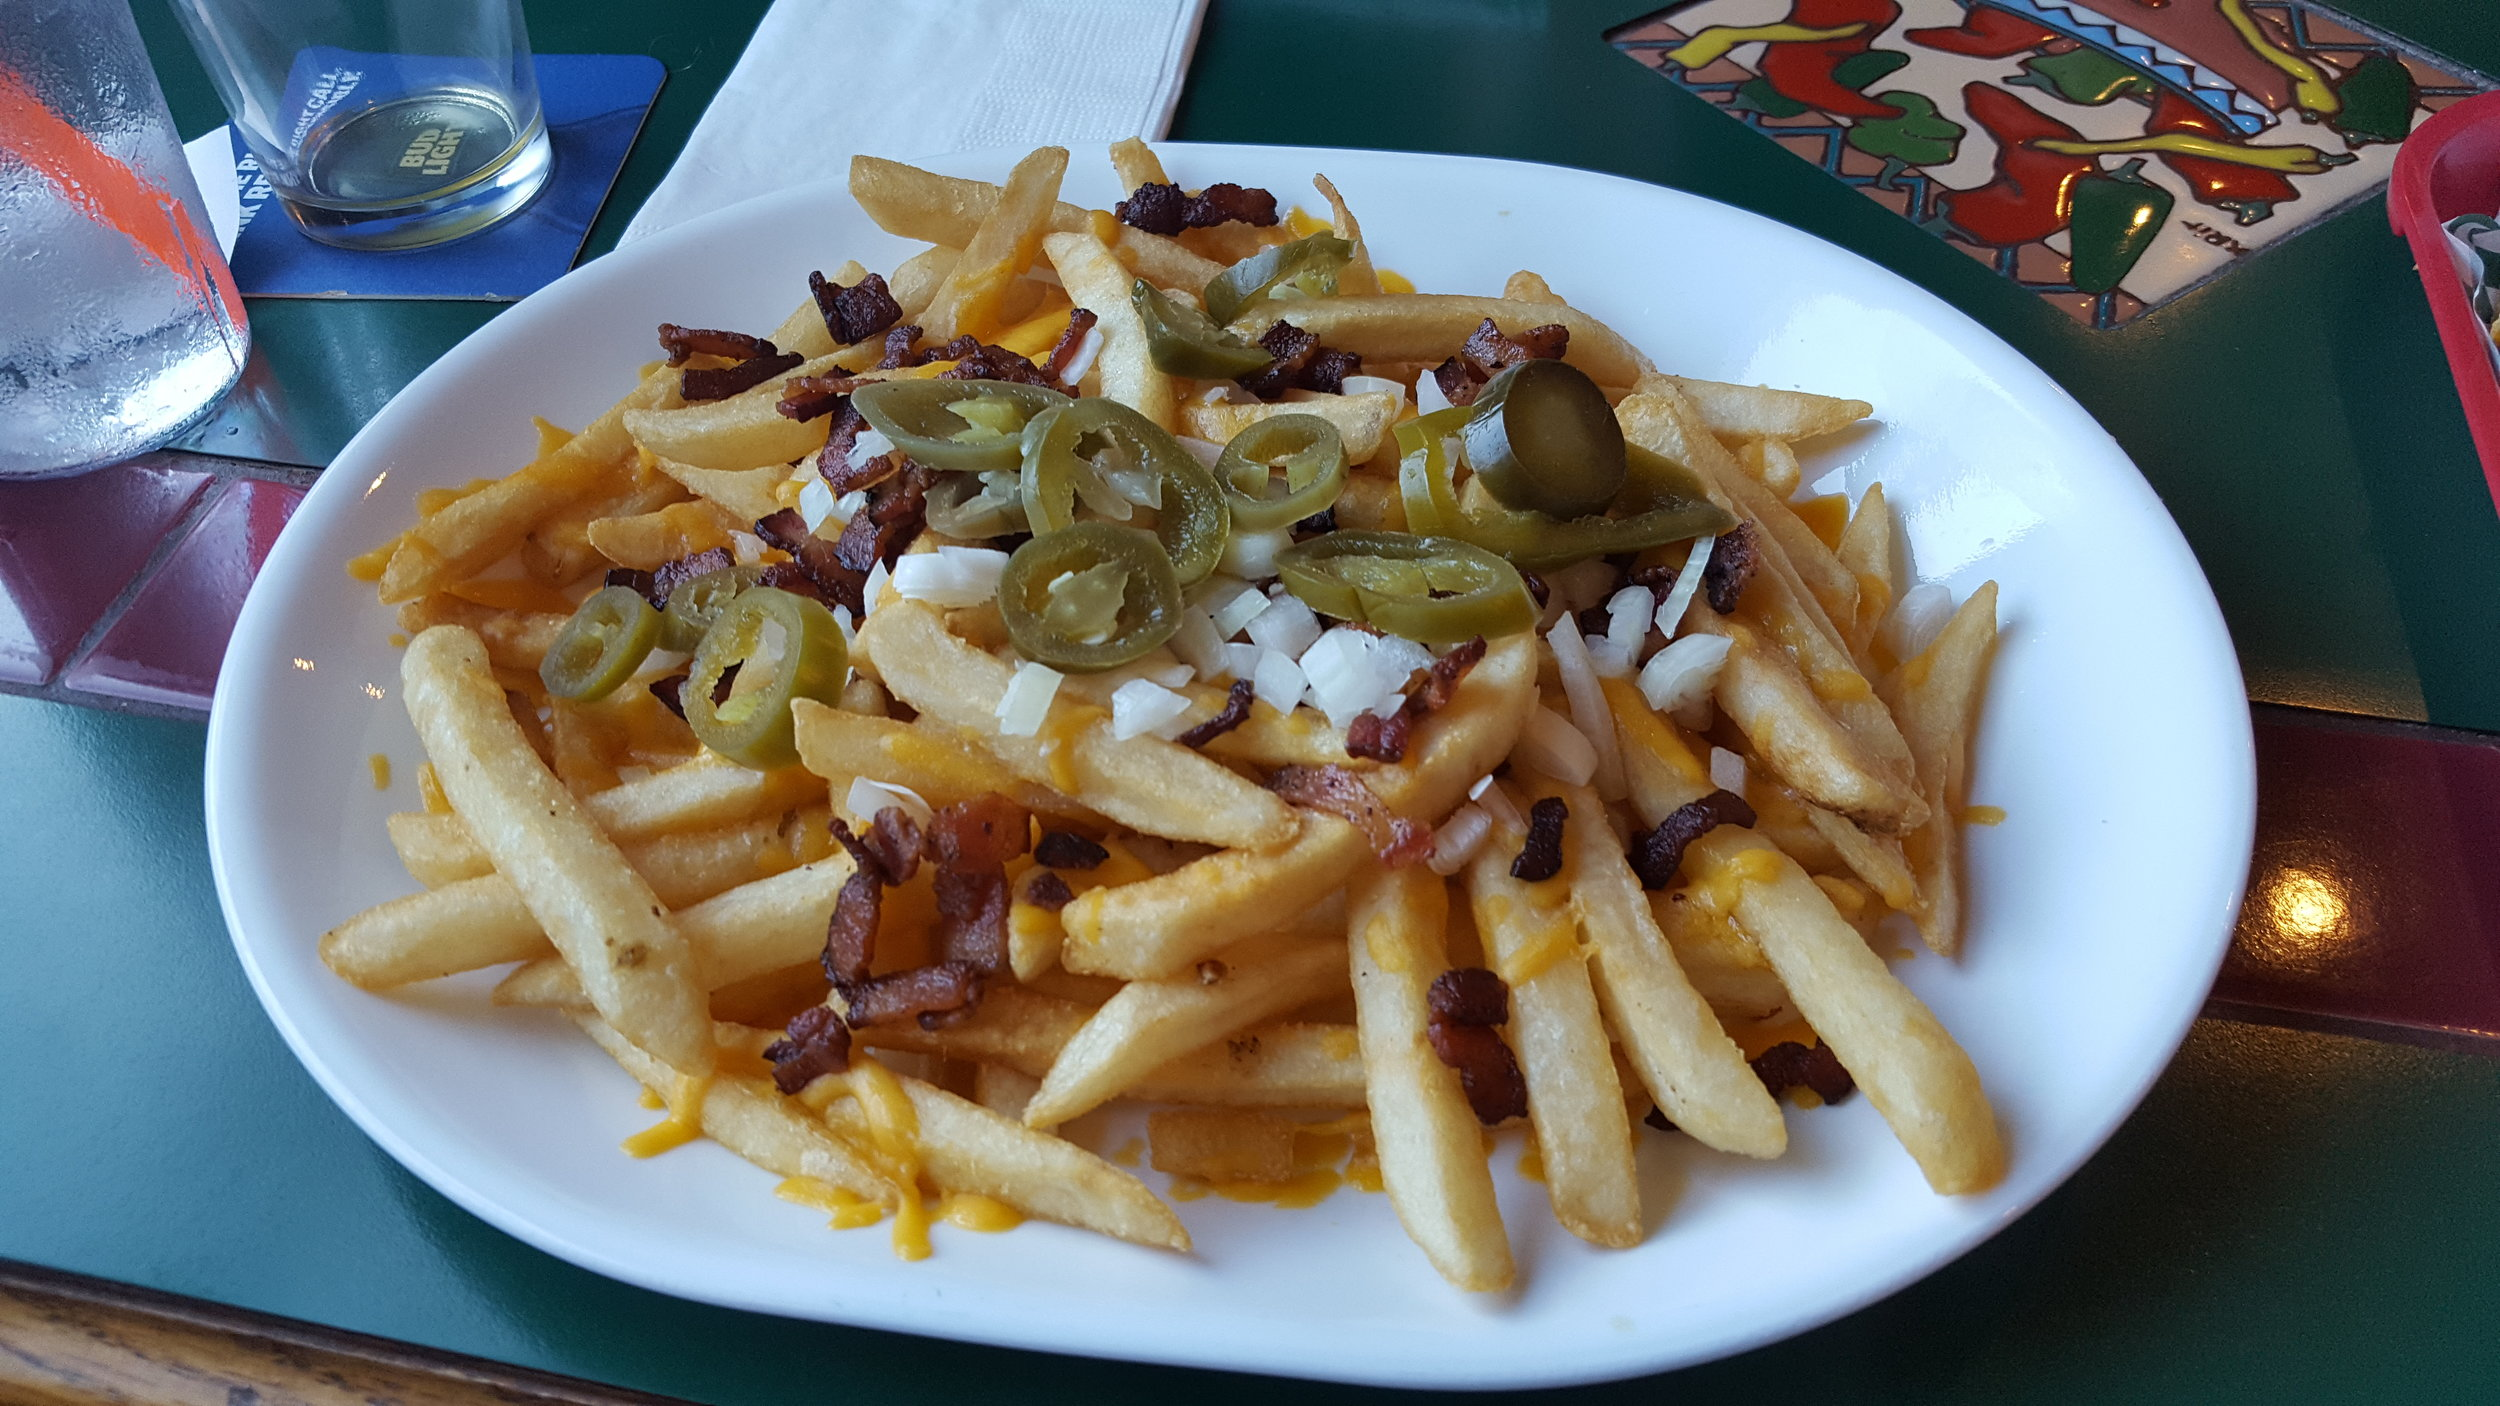 French Fries, Shredded Cheese, Bacon, Onions, Jalapenos, Olives